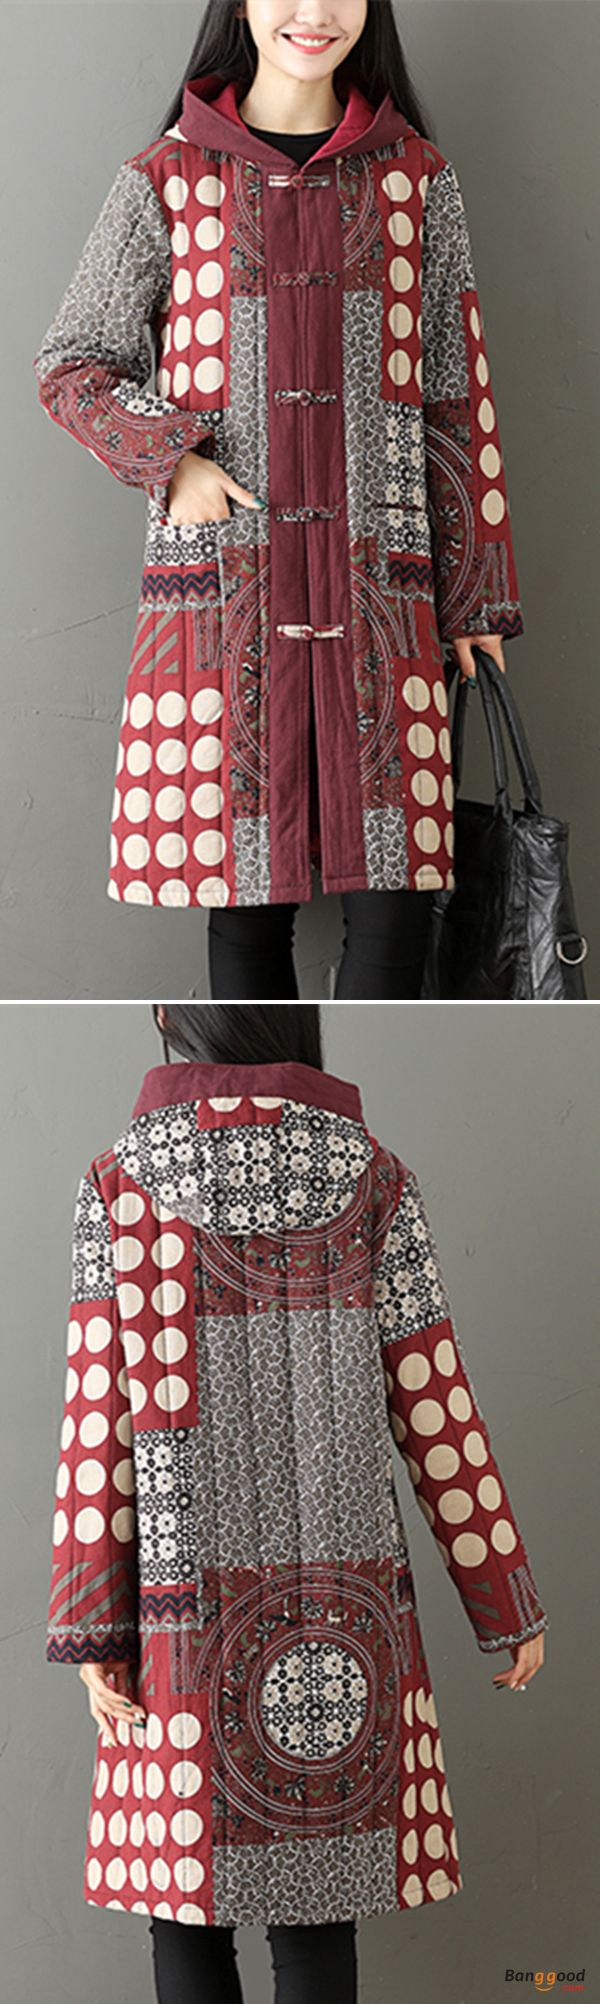 US$45.88 + Free shipping. Size: M~5XL. Color: Black, Red. Fall in love with casual and vintage style! Gracila Ethnic Printed Plate Buckle Thicken Women Hooded Coats.